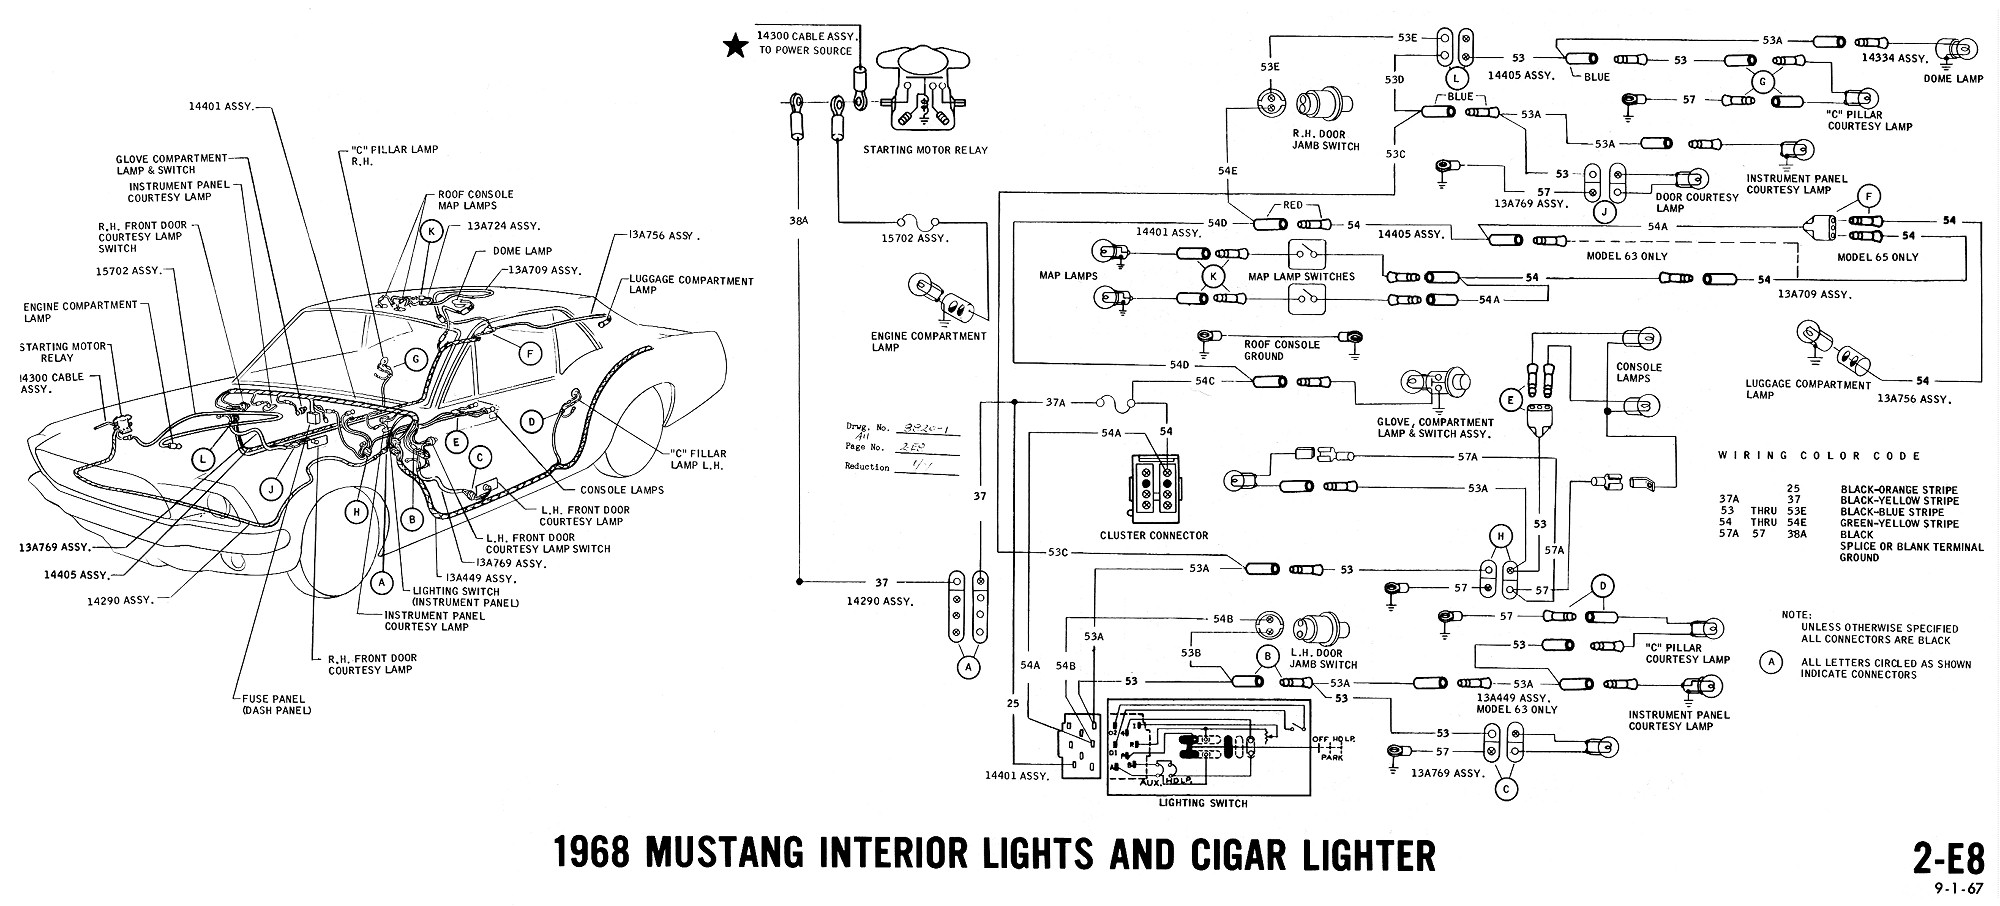 1968 Mustang Fuse Panel Diagram Trusted Schematics 1978 Pontiac Lemans Box Electrical Wiring Diagrams 1998